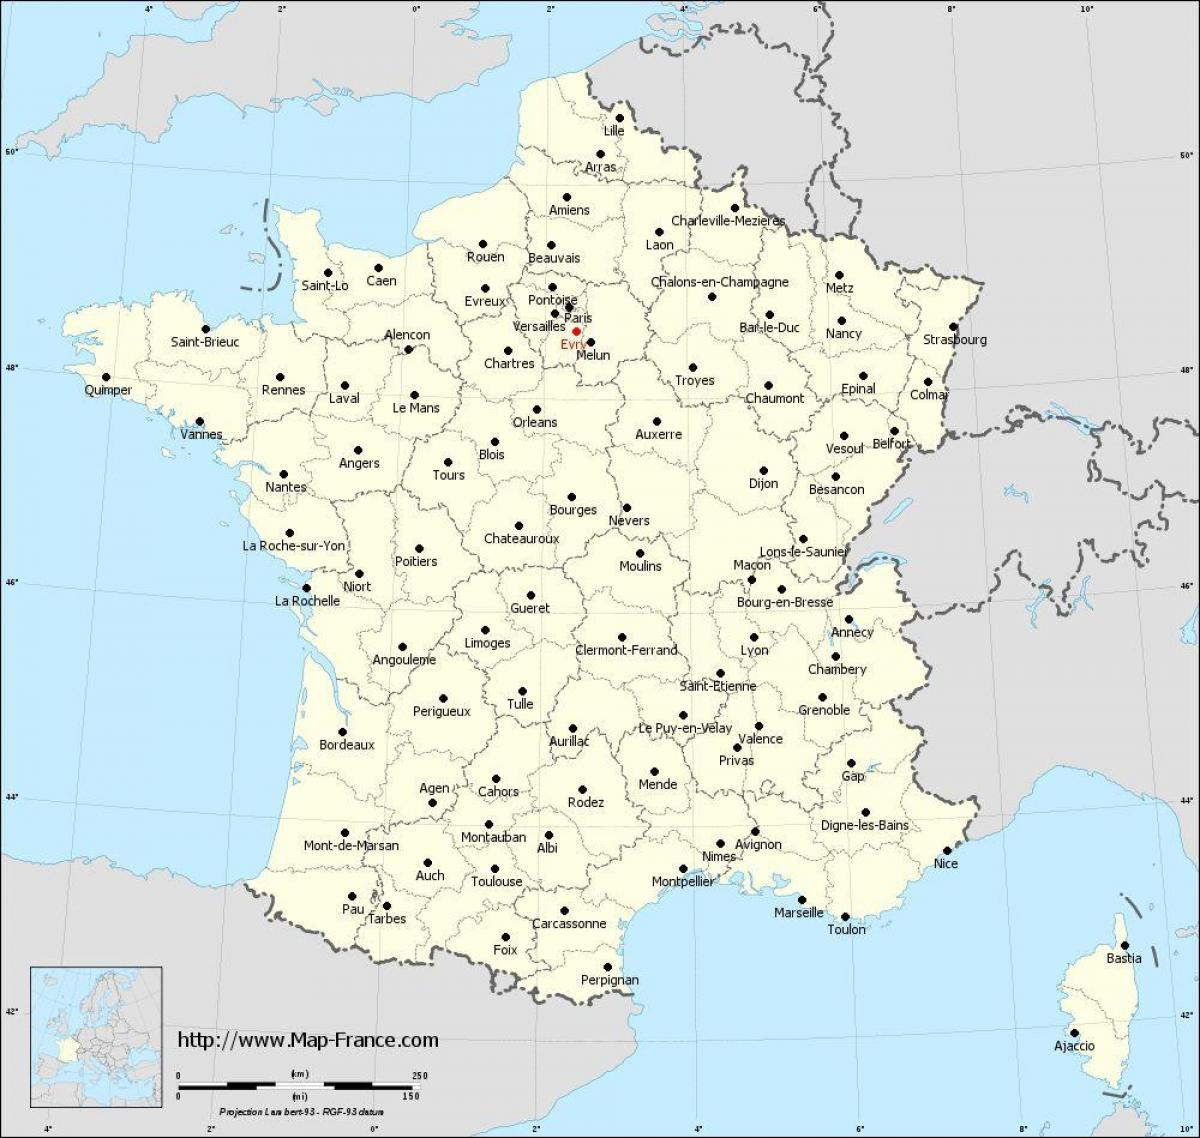 A Map Of France With Cities.Map Of France With Cities Map Of France And Cities Western Europe